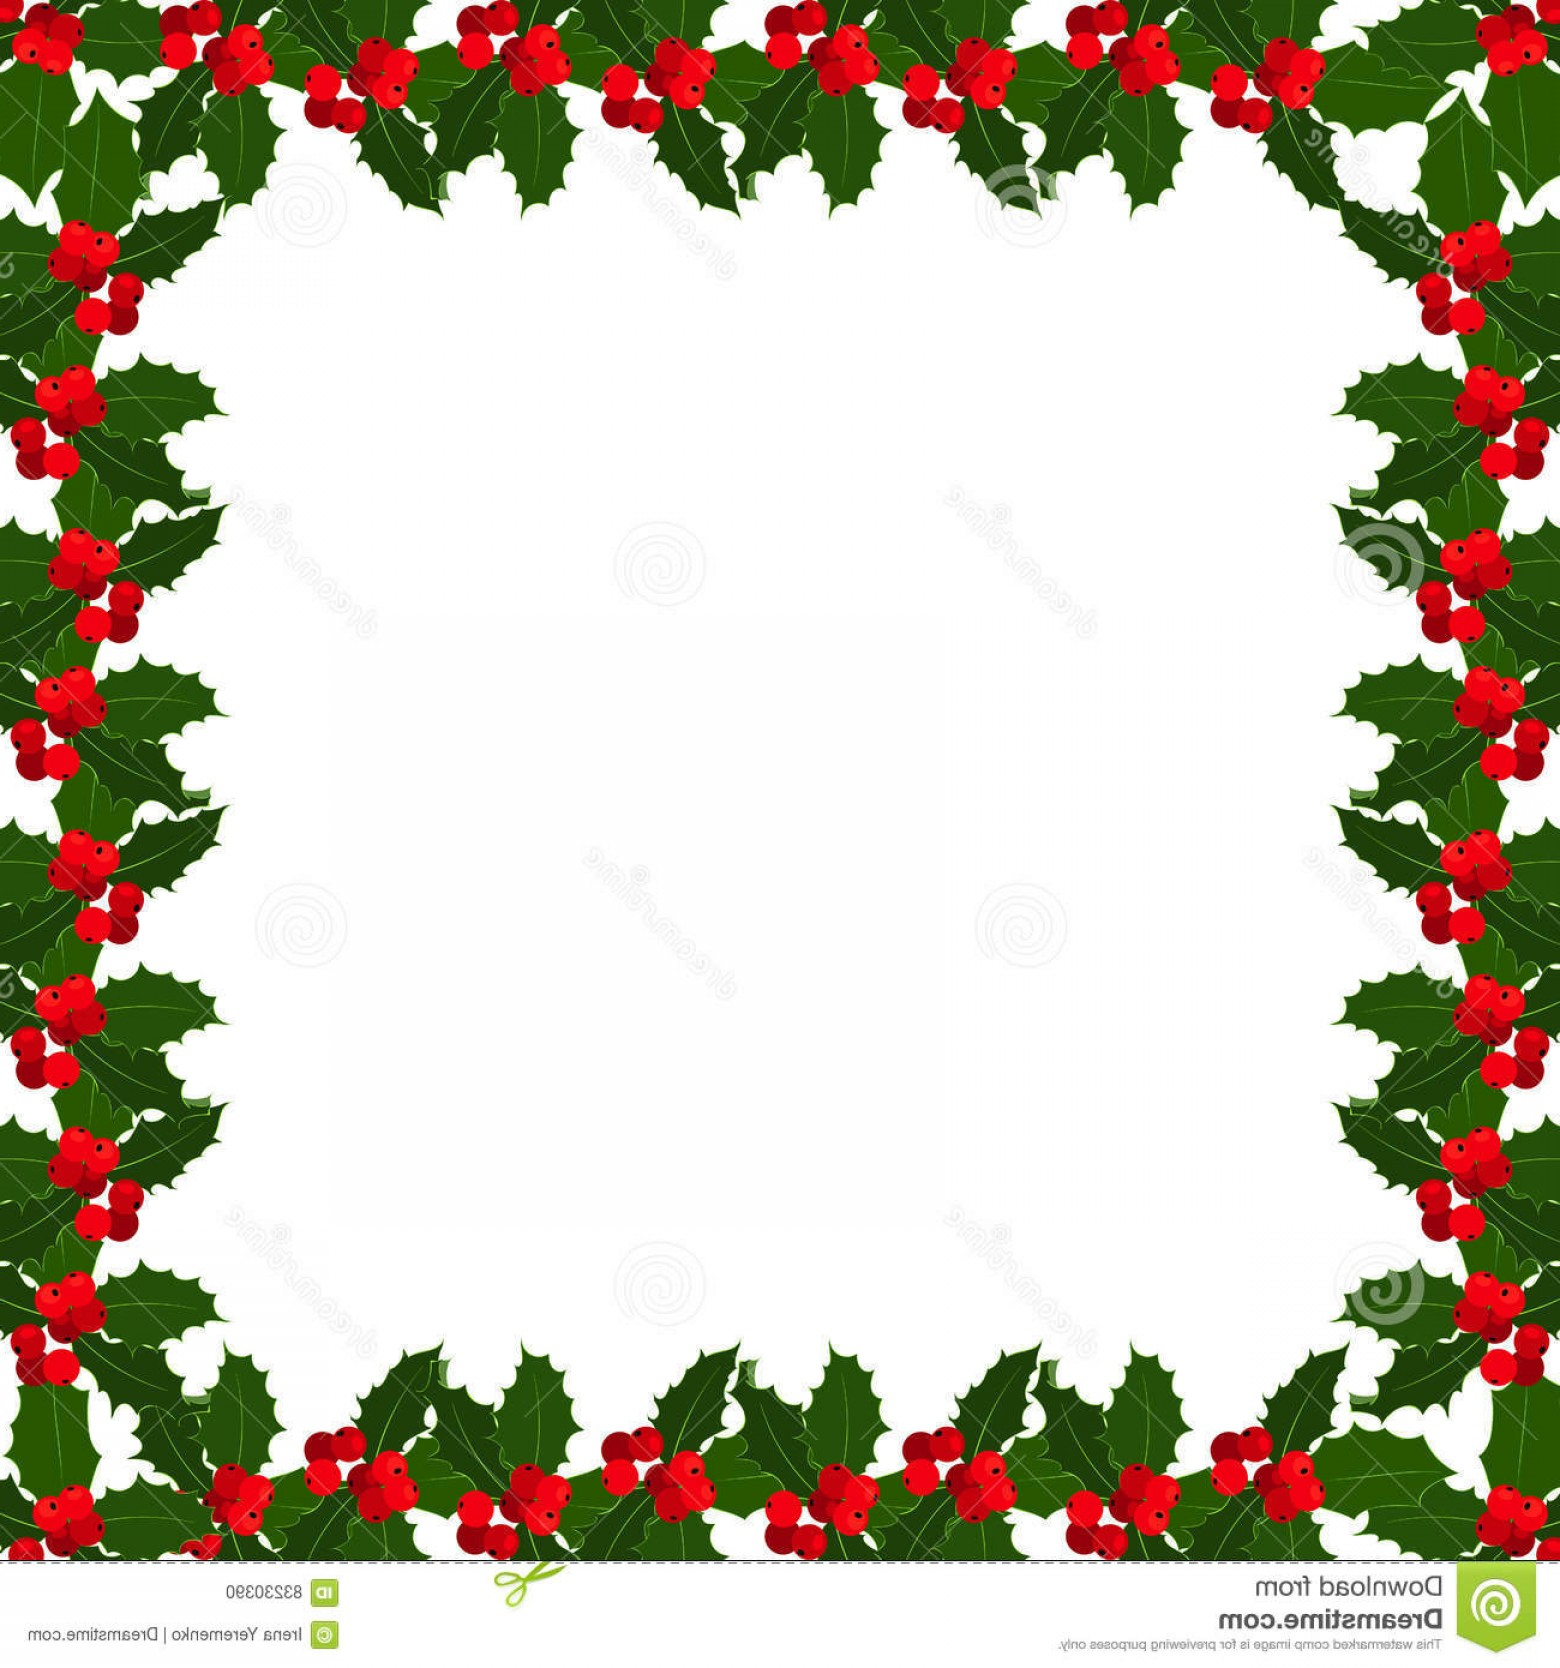 Christmas Holly Border Vector: Stock Illustration Christmas Holly Berries Frame White Bacground Vector Illustration Berry Border Image